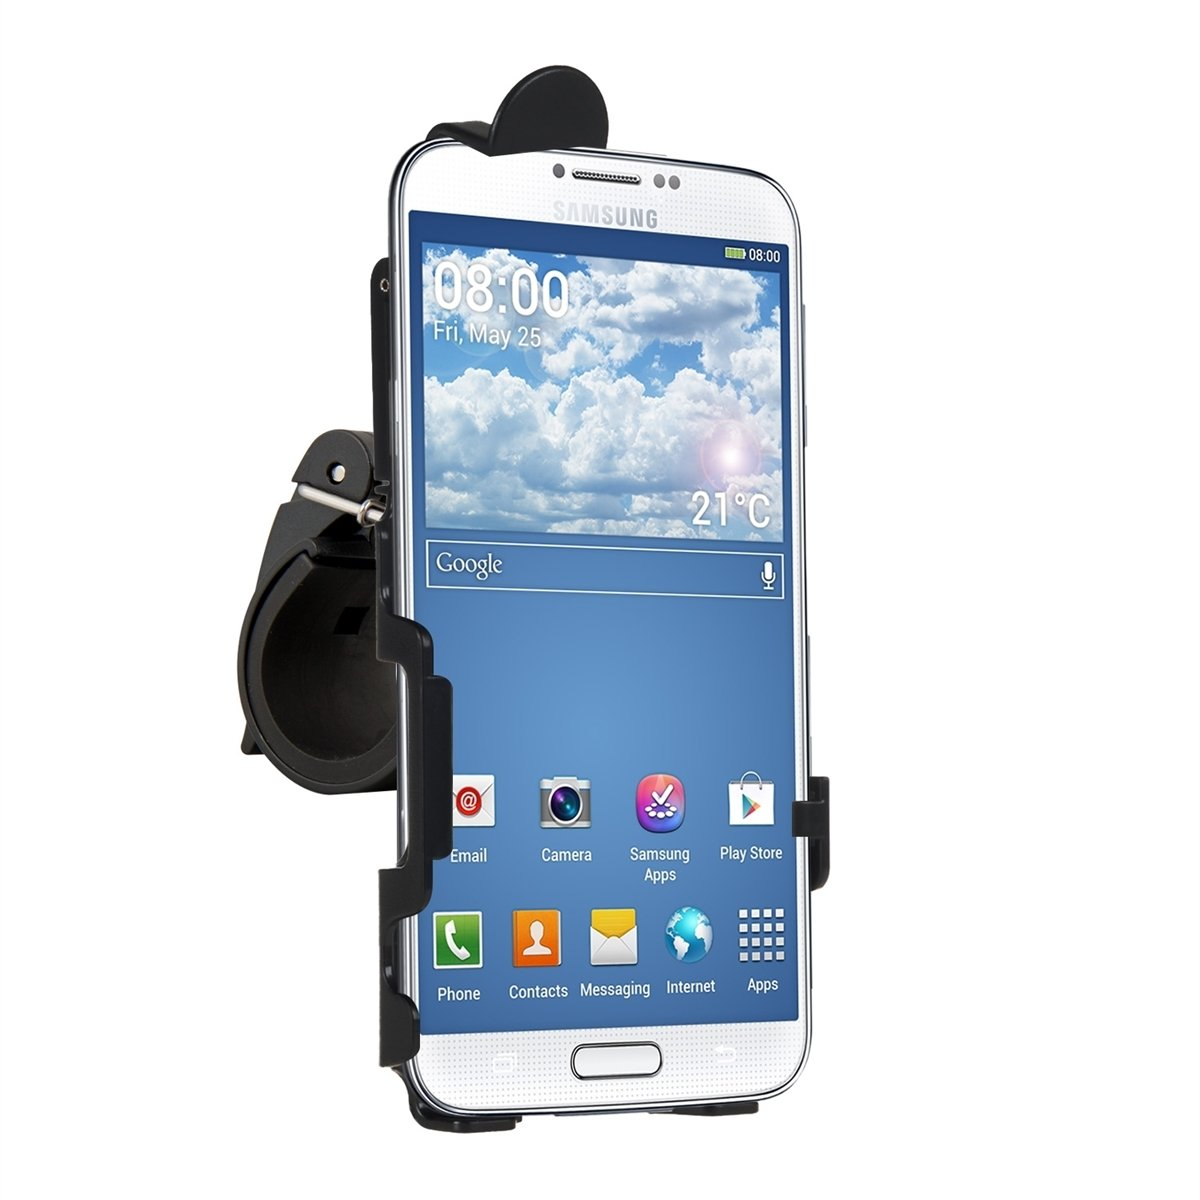 Bicycle mount for Samsung Galaxy Alpha - keeps your mobile phone positioned securely! интернет магазины в брянске samsung galaxy alpha